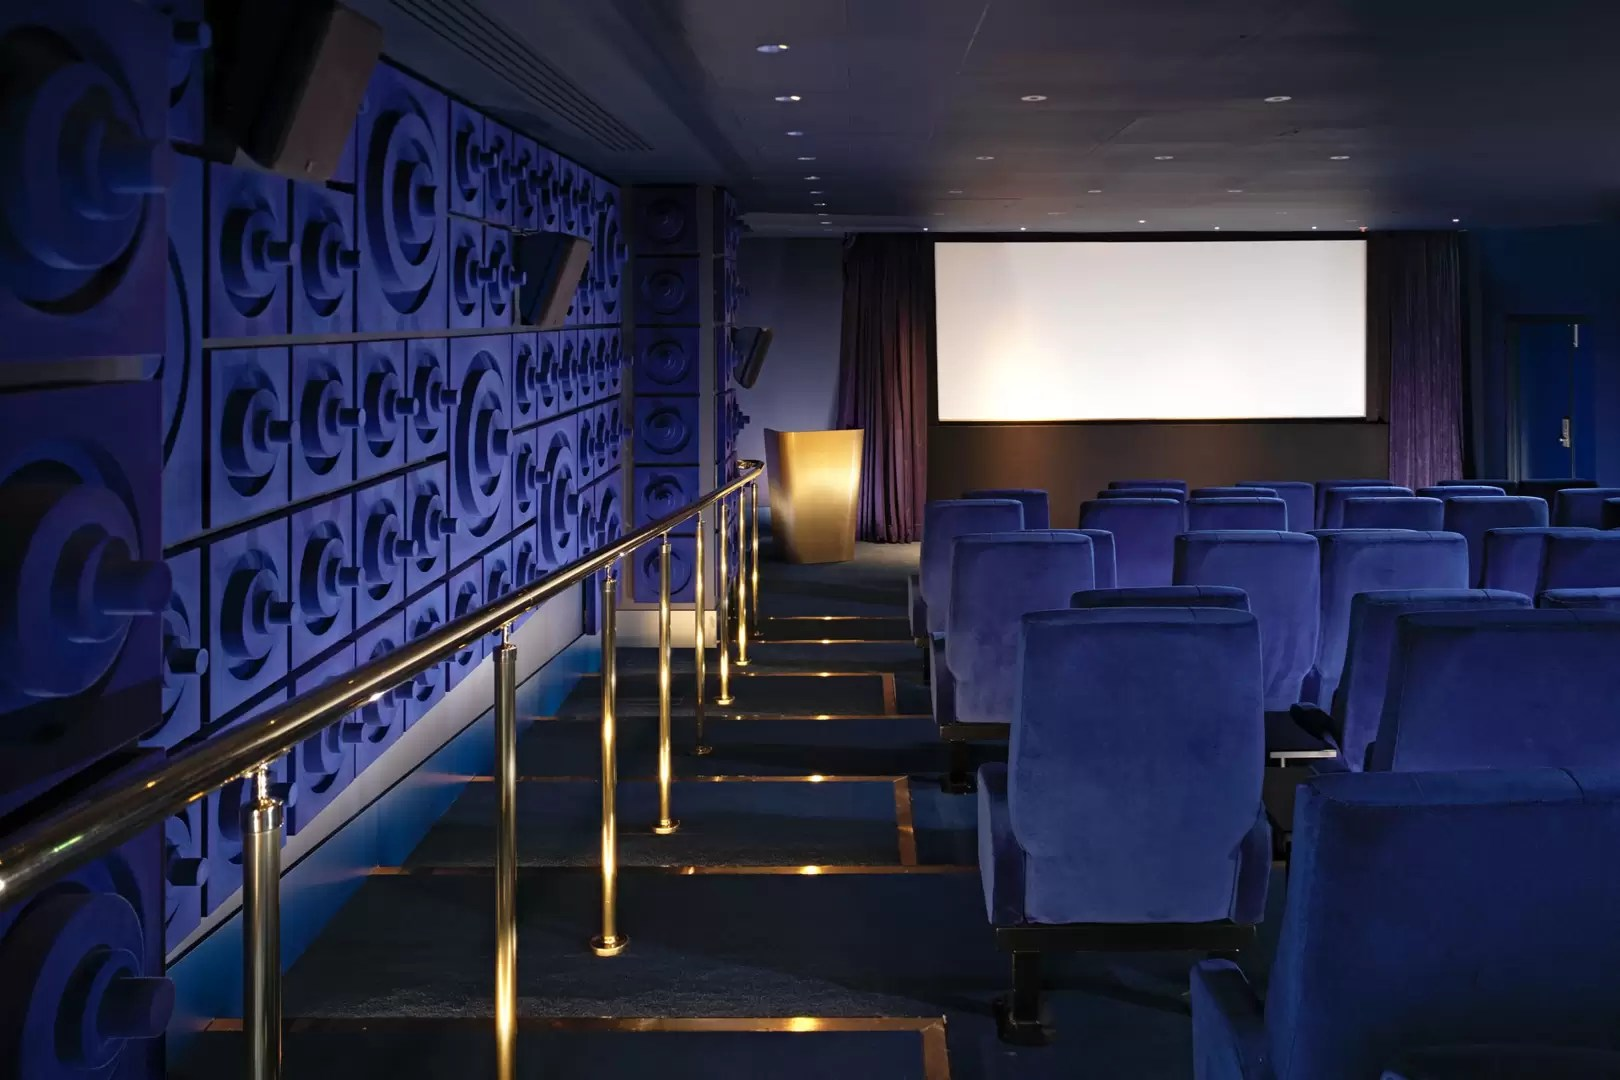 east london sofa cinema violino leather stockists the best hotels with in house cinemas where to watch films 6